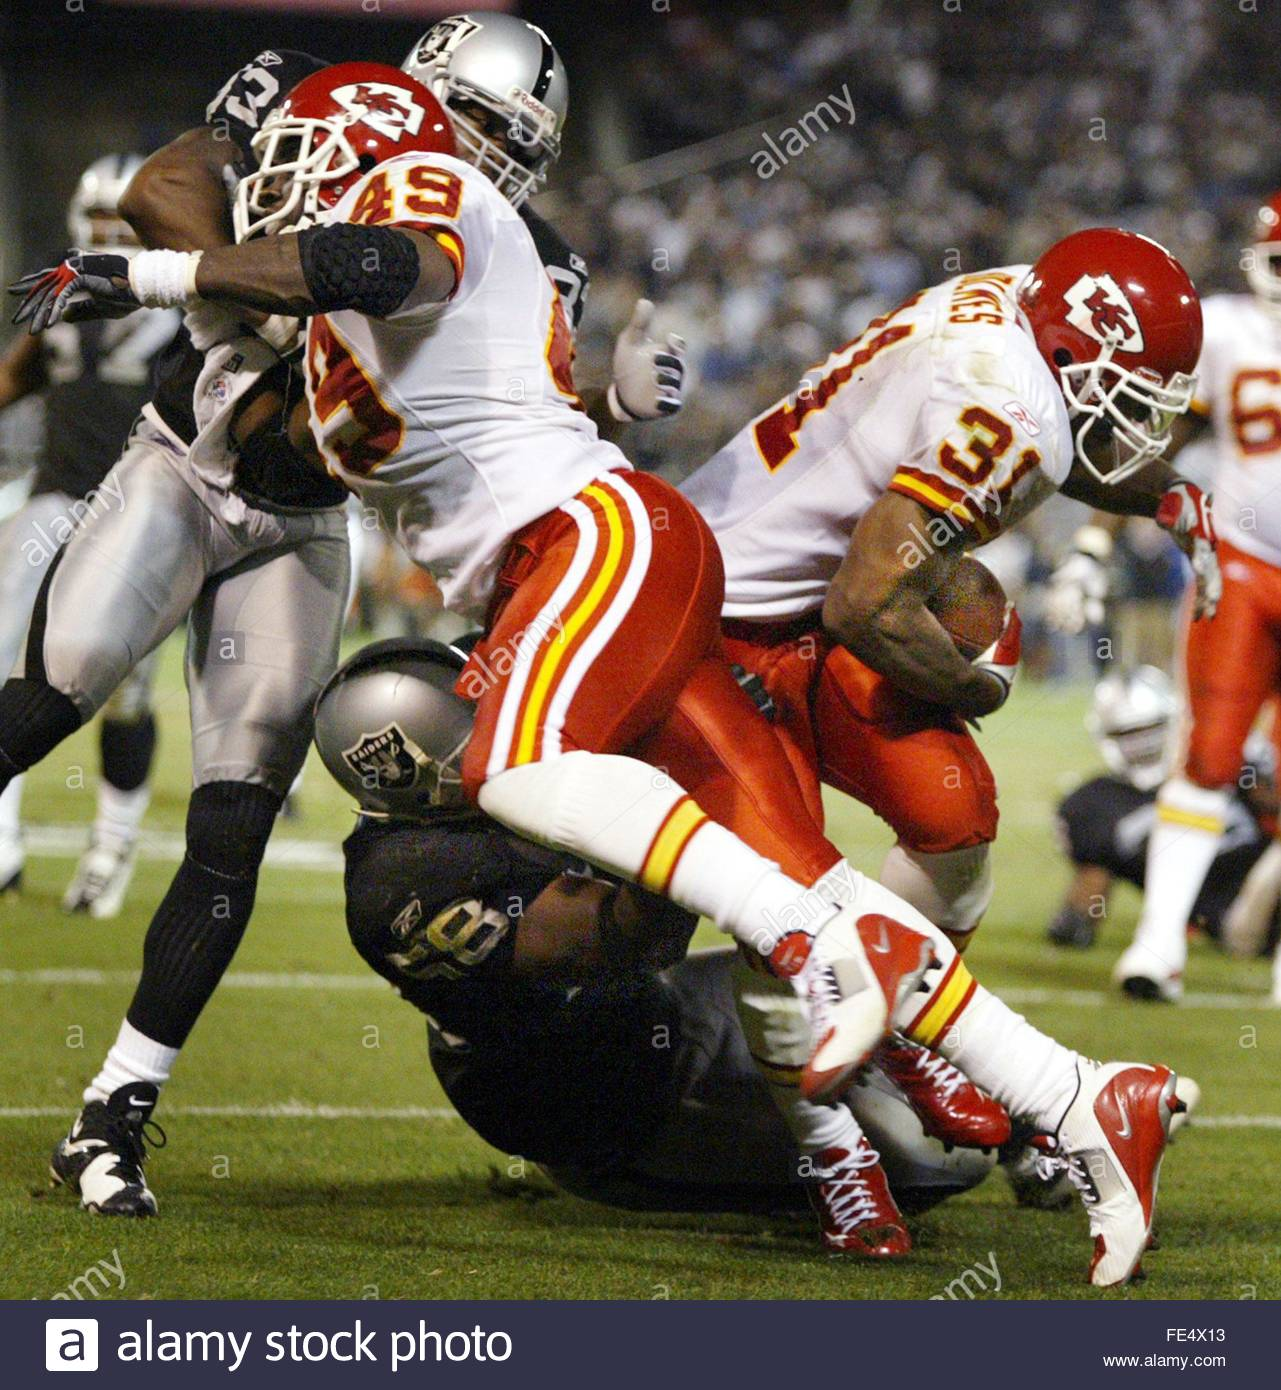 Kansas City Chiefs' Priest Holmes (R) runs in for a first down fourth quarter as teammate Tony Richardson (L, 43) blocks Oakland Raiders' Anthony Dorsett (Top L) and Napoleon Harris (Bottom C) on Monday, 20 October 2003 at Network Associates Coliseum in Oakland, California. EPA/Arleen NG